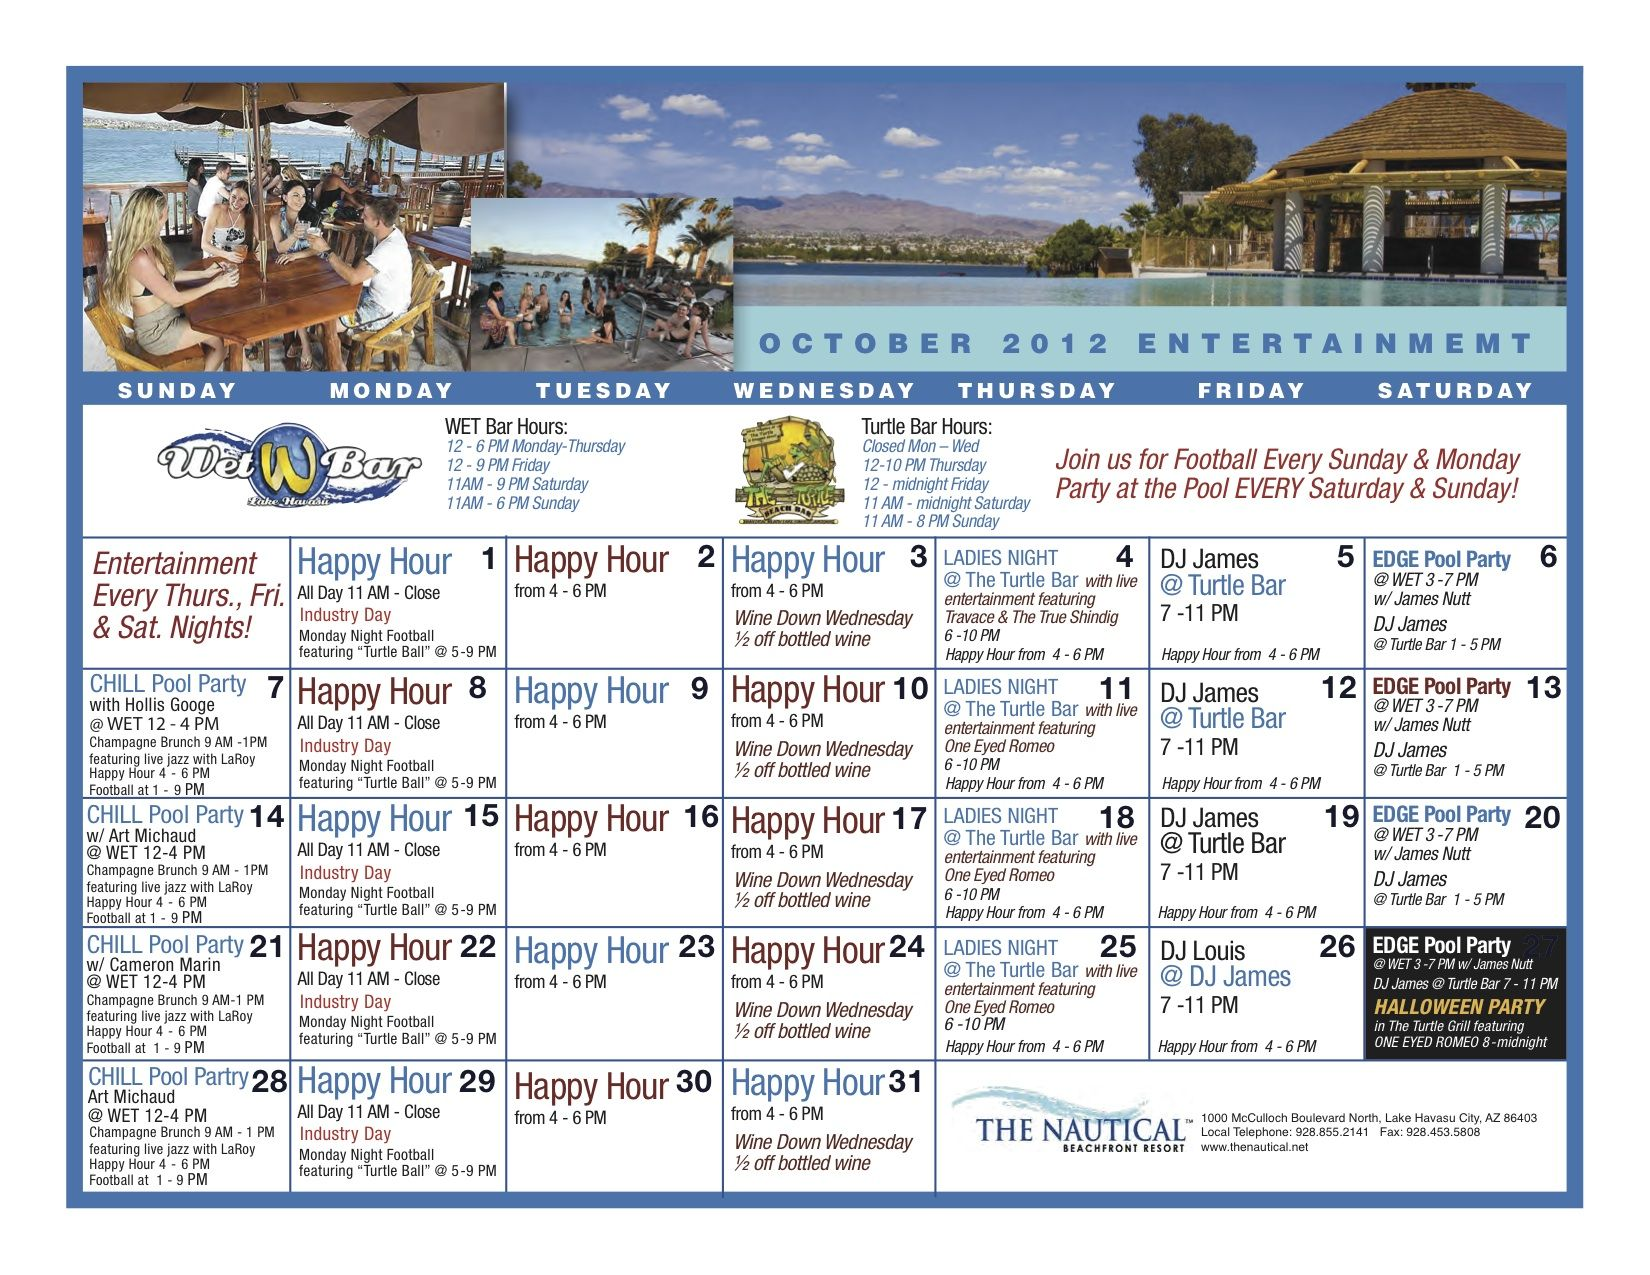 October Entertainment at The Nautical!